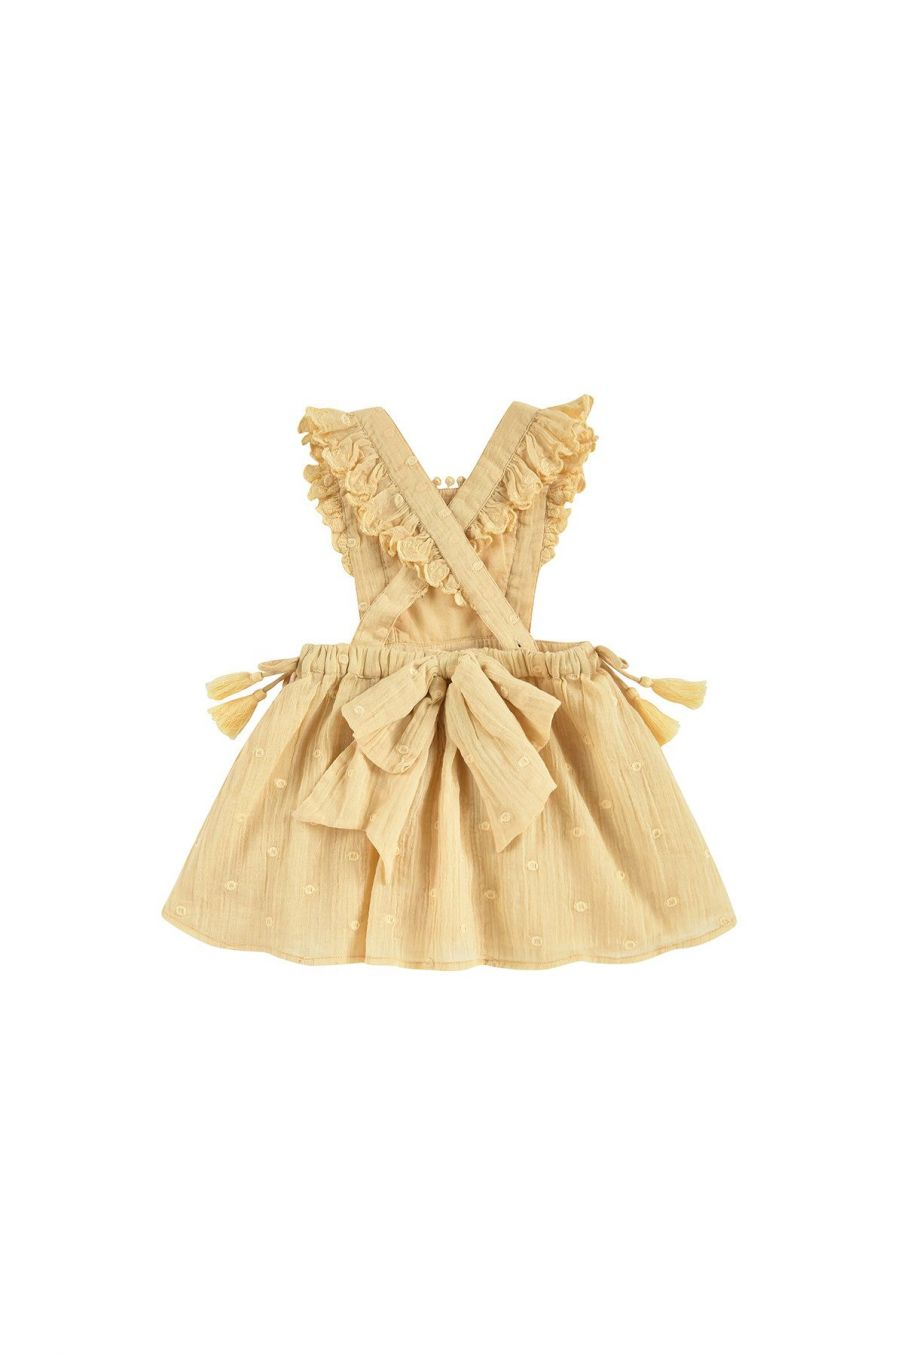 boheme chic vintage robe bébé fille huguette soft honey plumetis